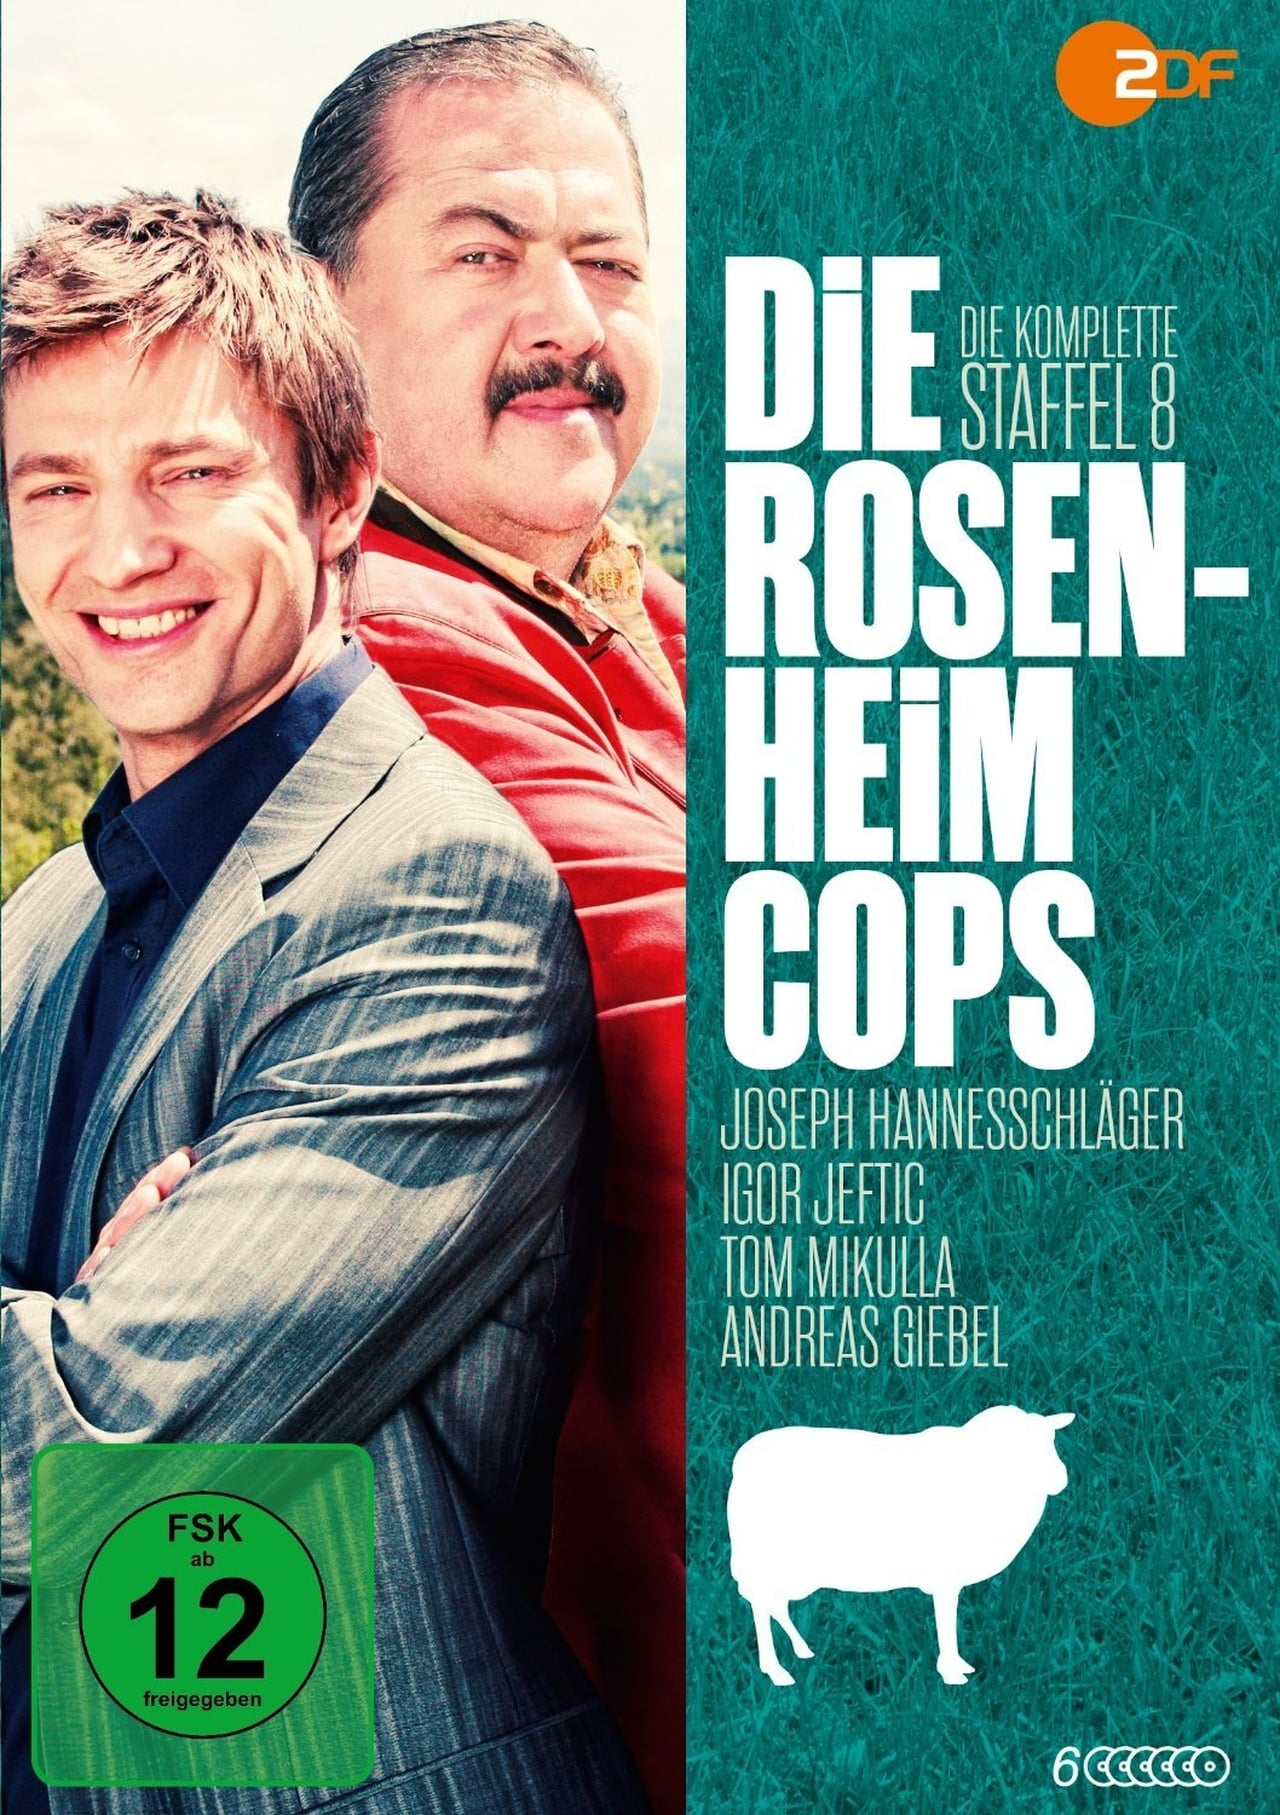 The Rosenheim Cops Season 8 (2008) putlockers cafe